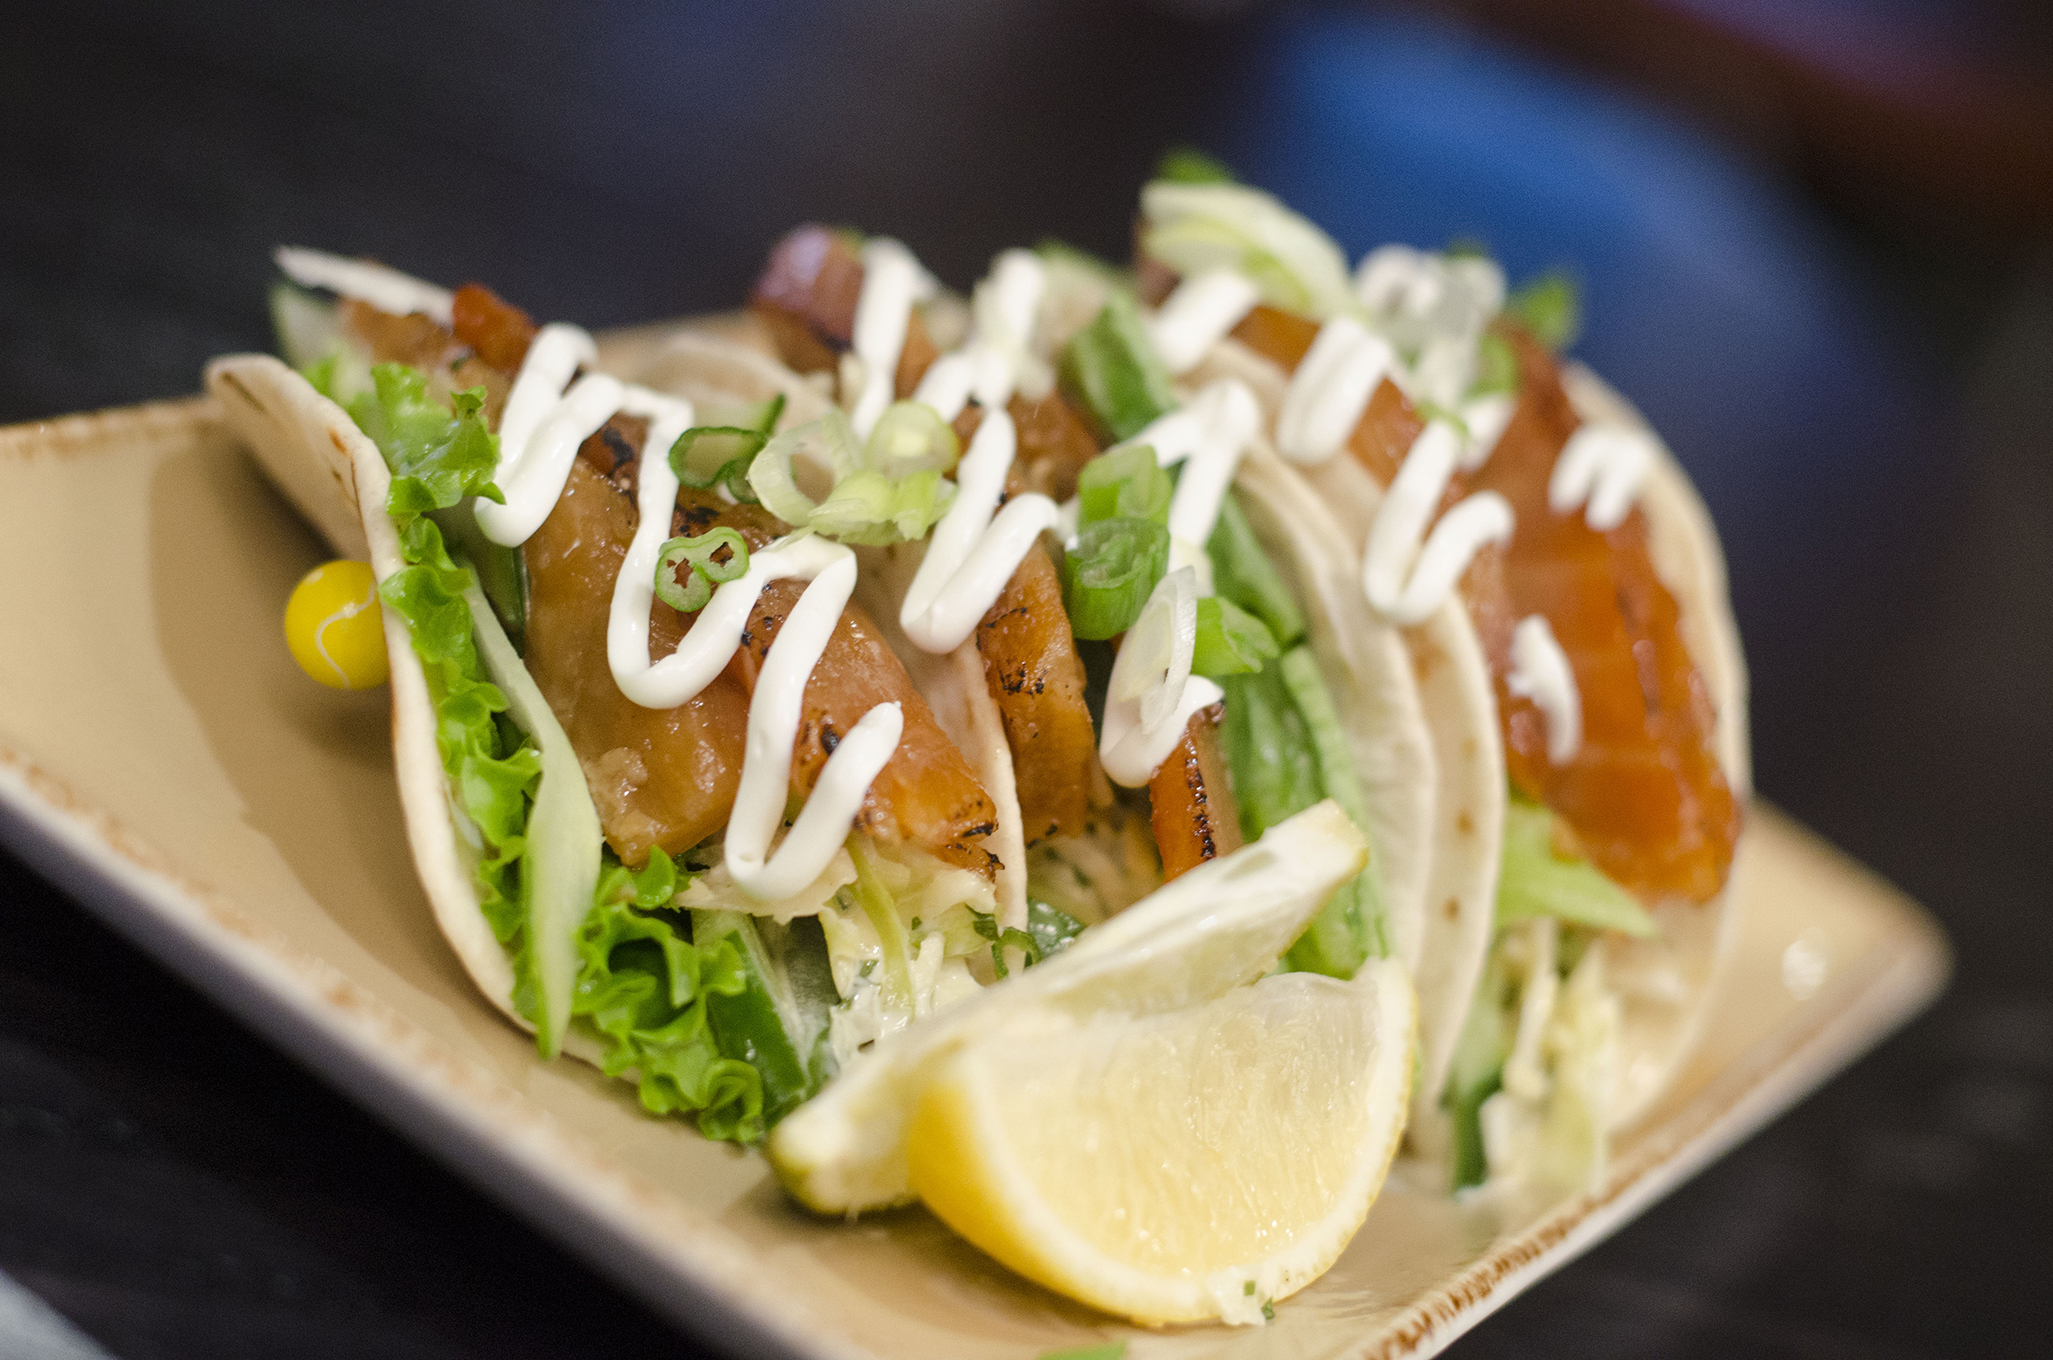 Maple candied smoked salmon tacos at Legends Sports Bar within the Caesars Windsor resort in Windsor, Ontario